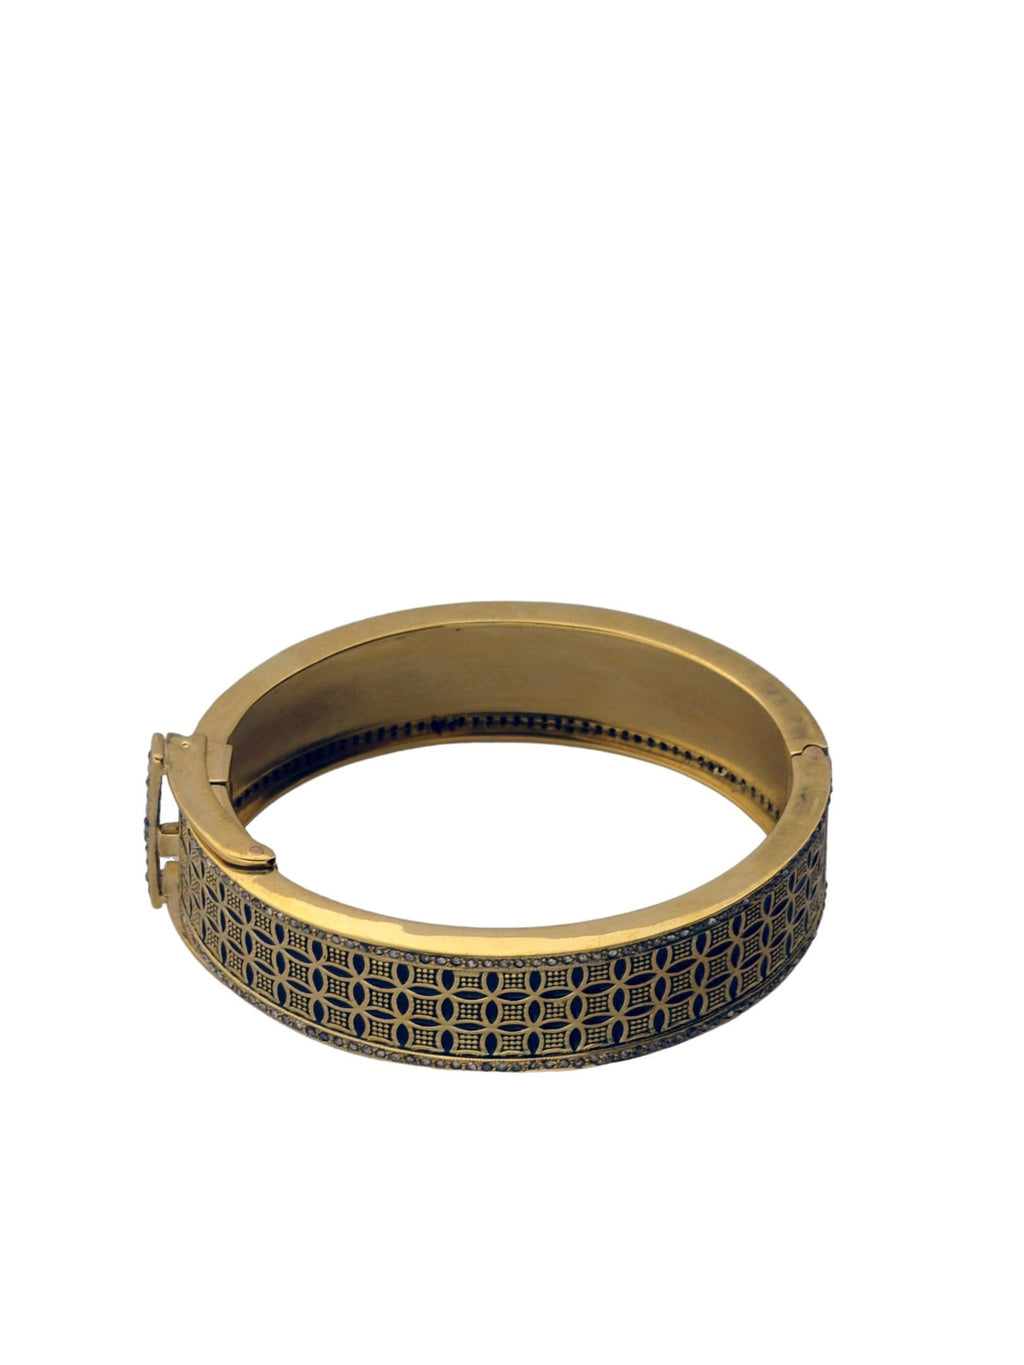 Brass Lattice Bangle with Pave Diamonds.